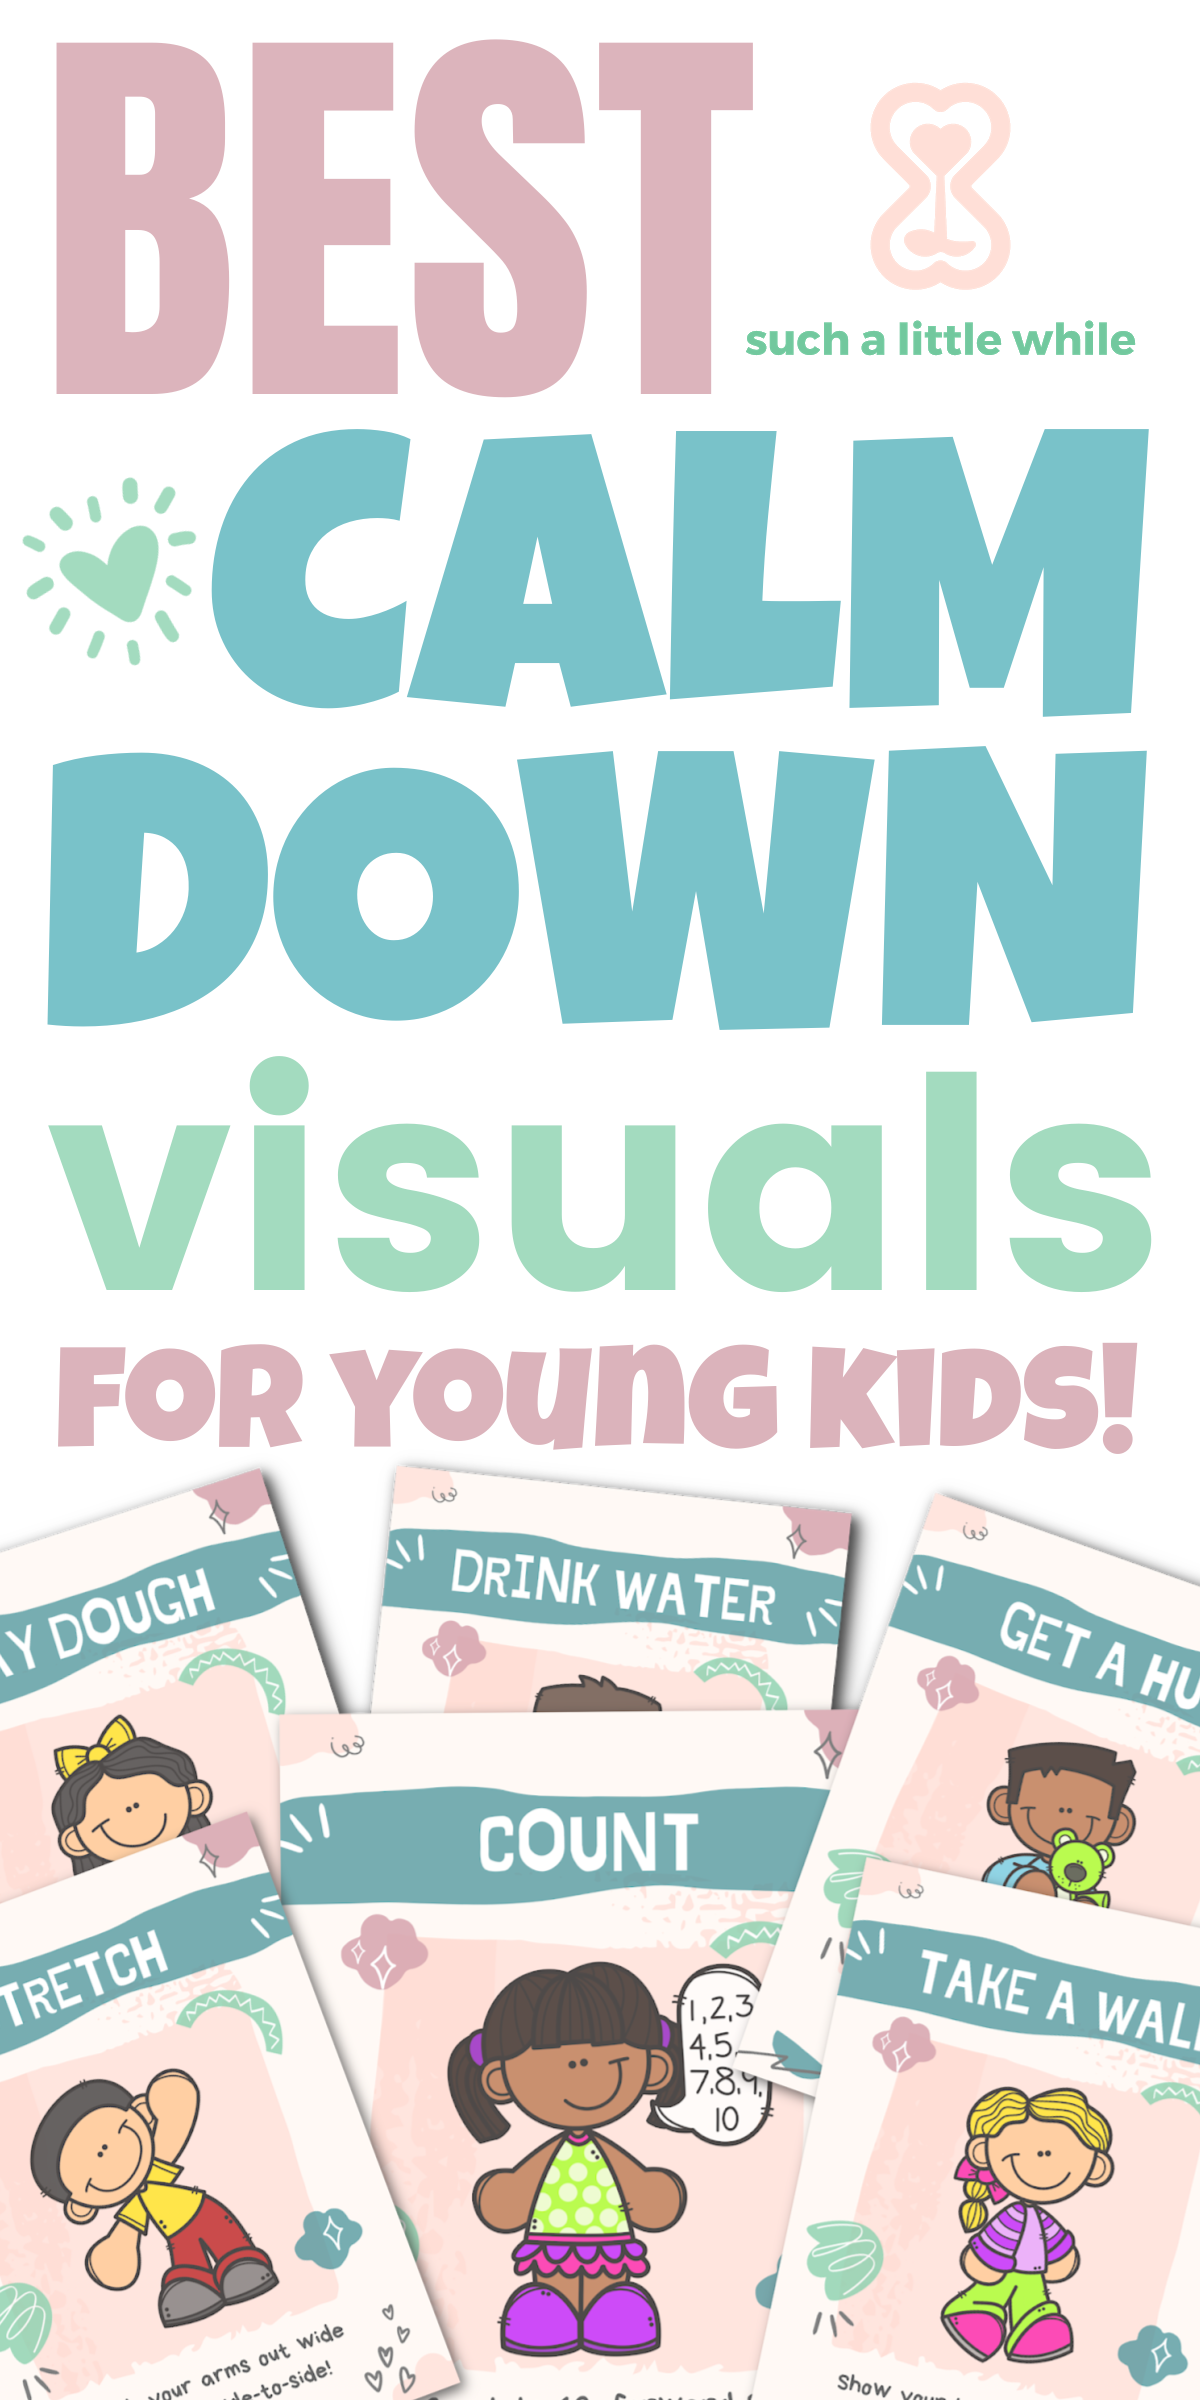 Best Calm Down Visual Cards for Young Kids by Such a Little While